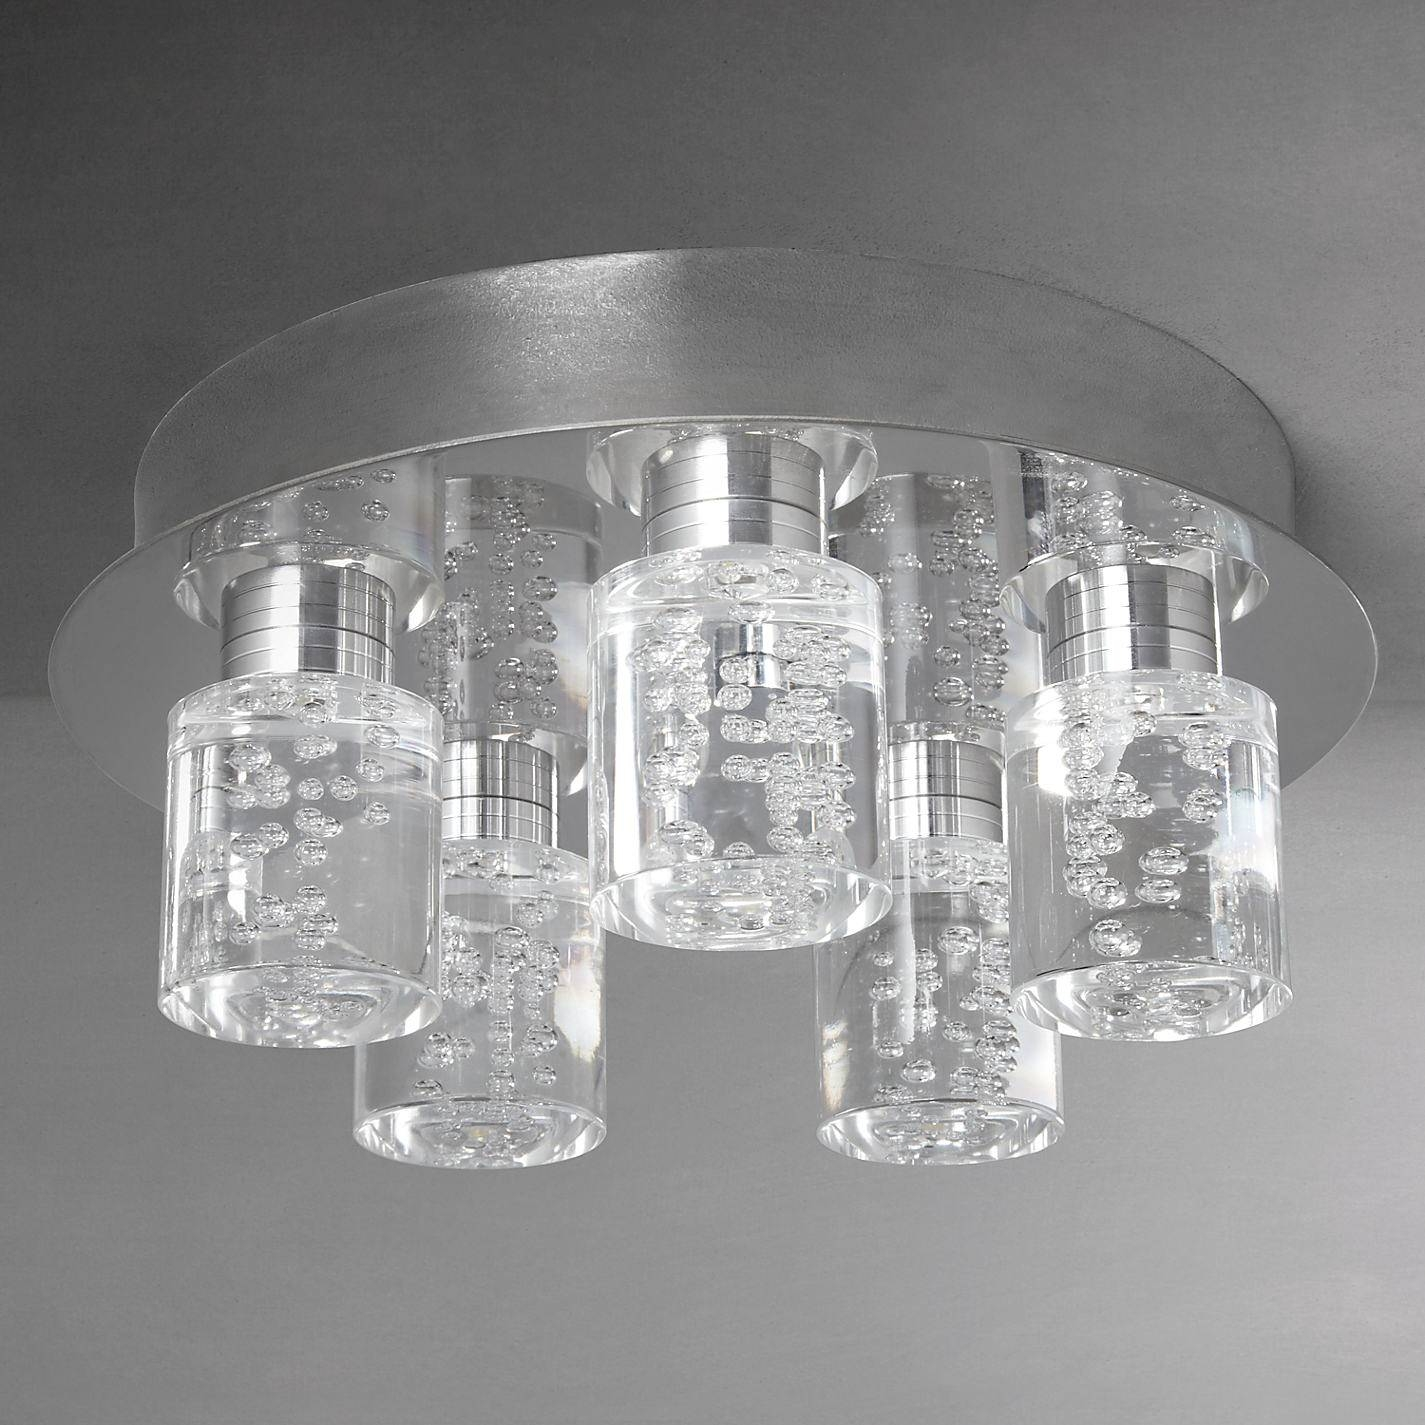 Unique Bubble Ceiling Light 95 On Replacement Pendant Light Shades with regard to John Lewis Pendant Light Shades (Image 15 of 15)